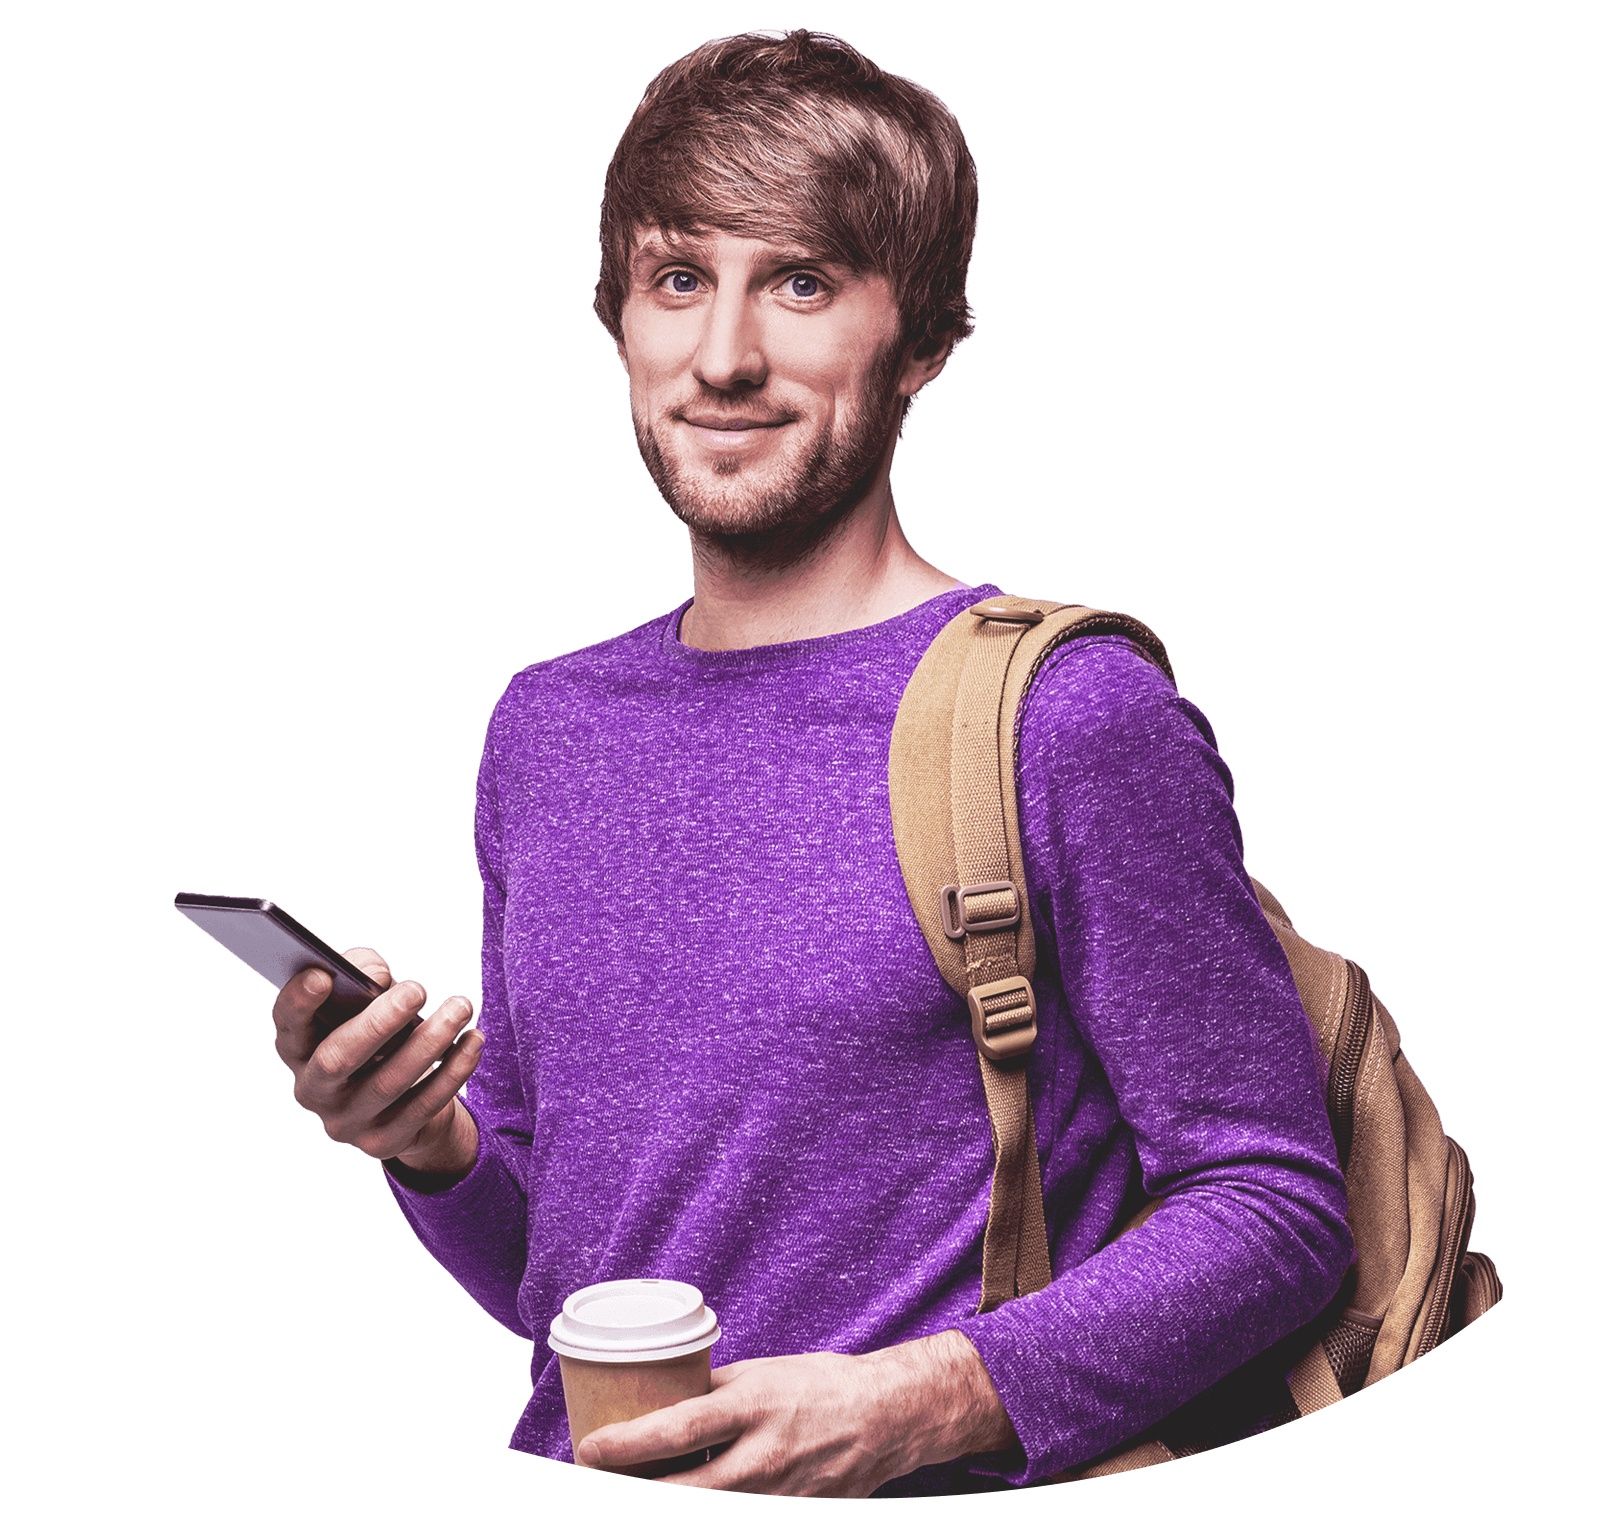 College student in a purple shirt with short, shaggy hair. He wears a brown backpack and in his left hand holds a coffee cup. In his right hand he holds a mobile phone.